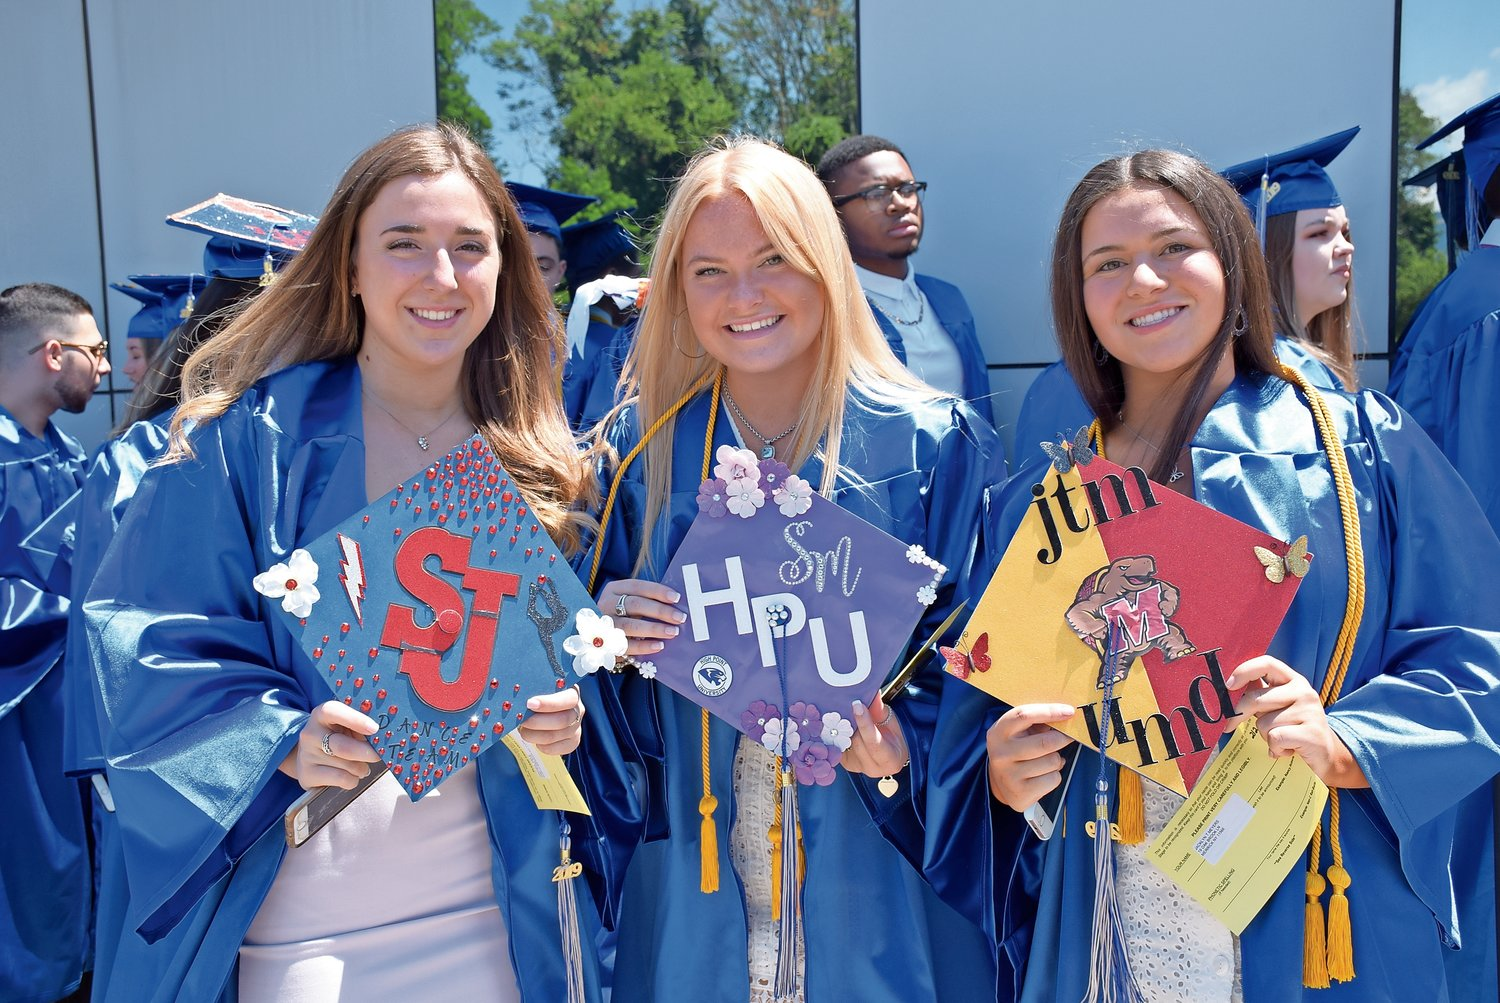 Sanford H. Calhoun graduates, from left, Amanda Mele, Sydney McGinley and Jacklyn Meyers showed off their future universities.